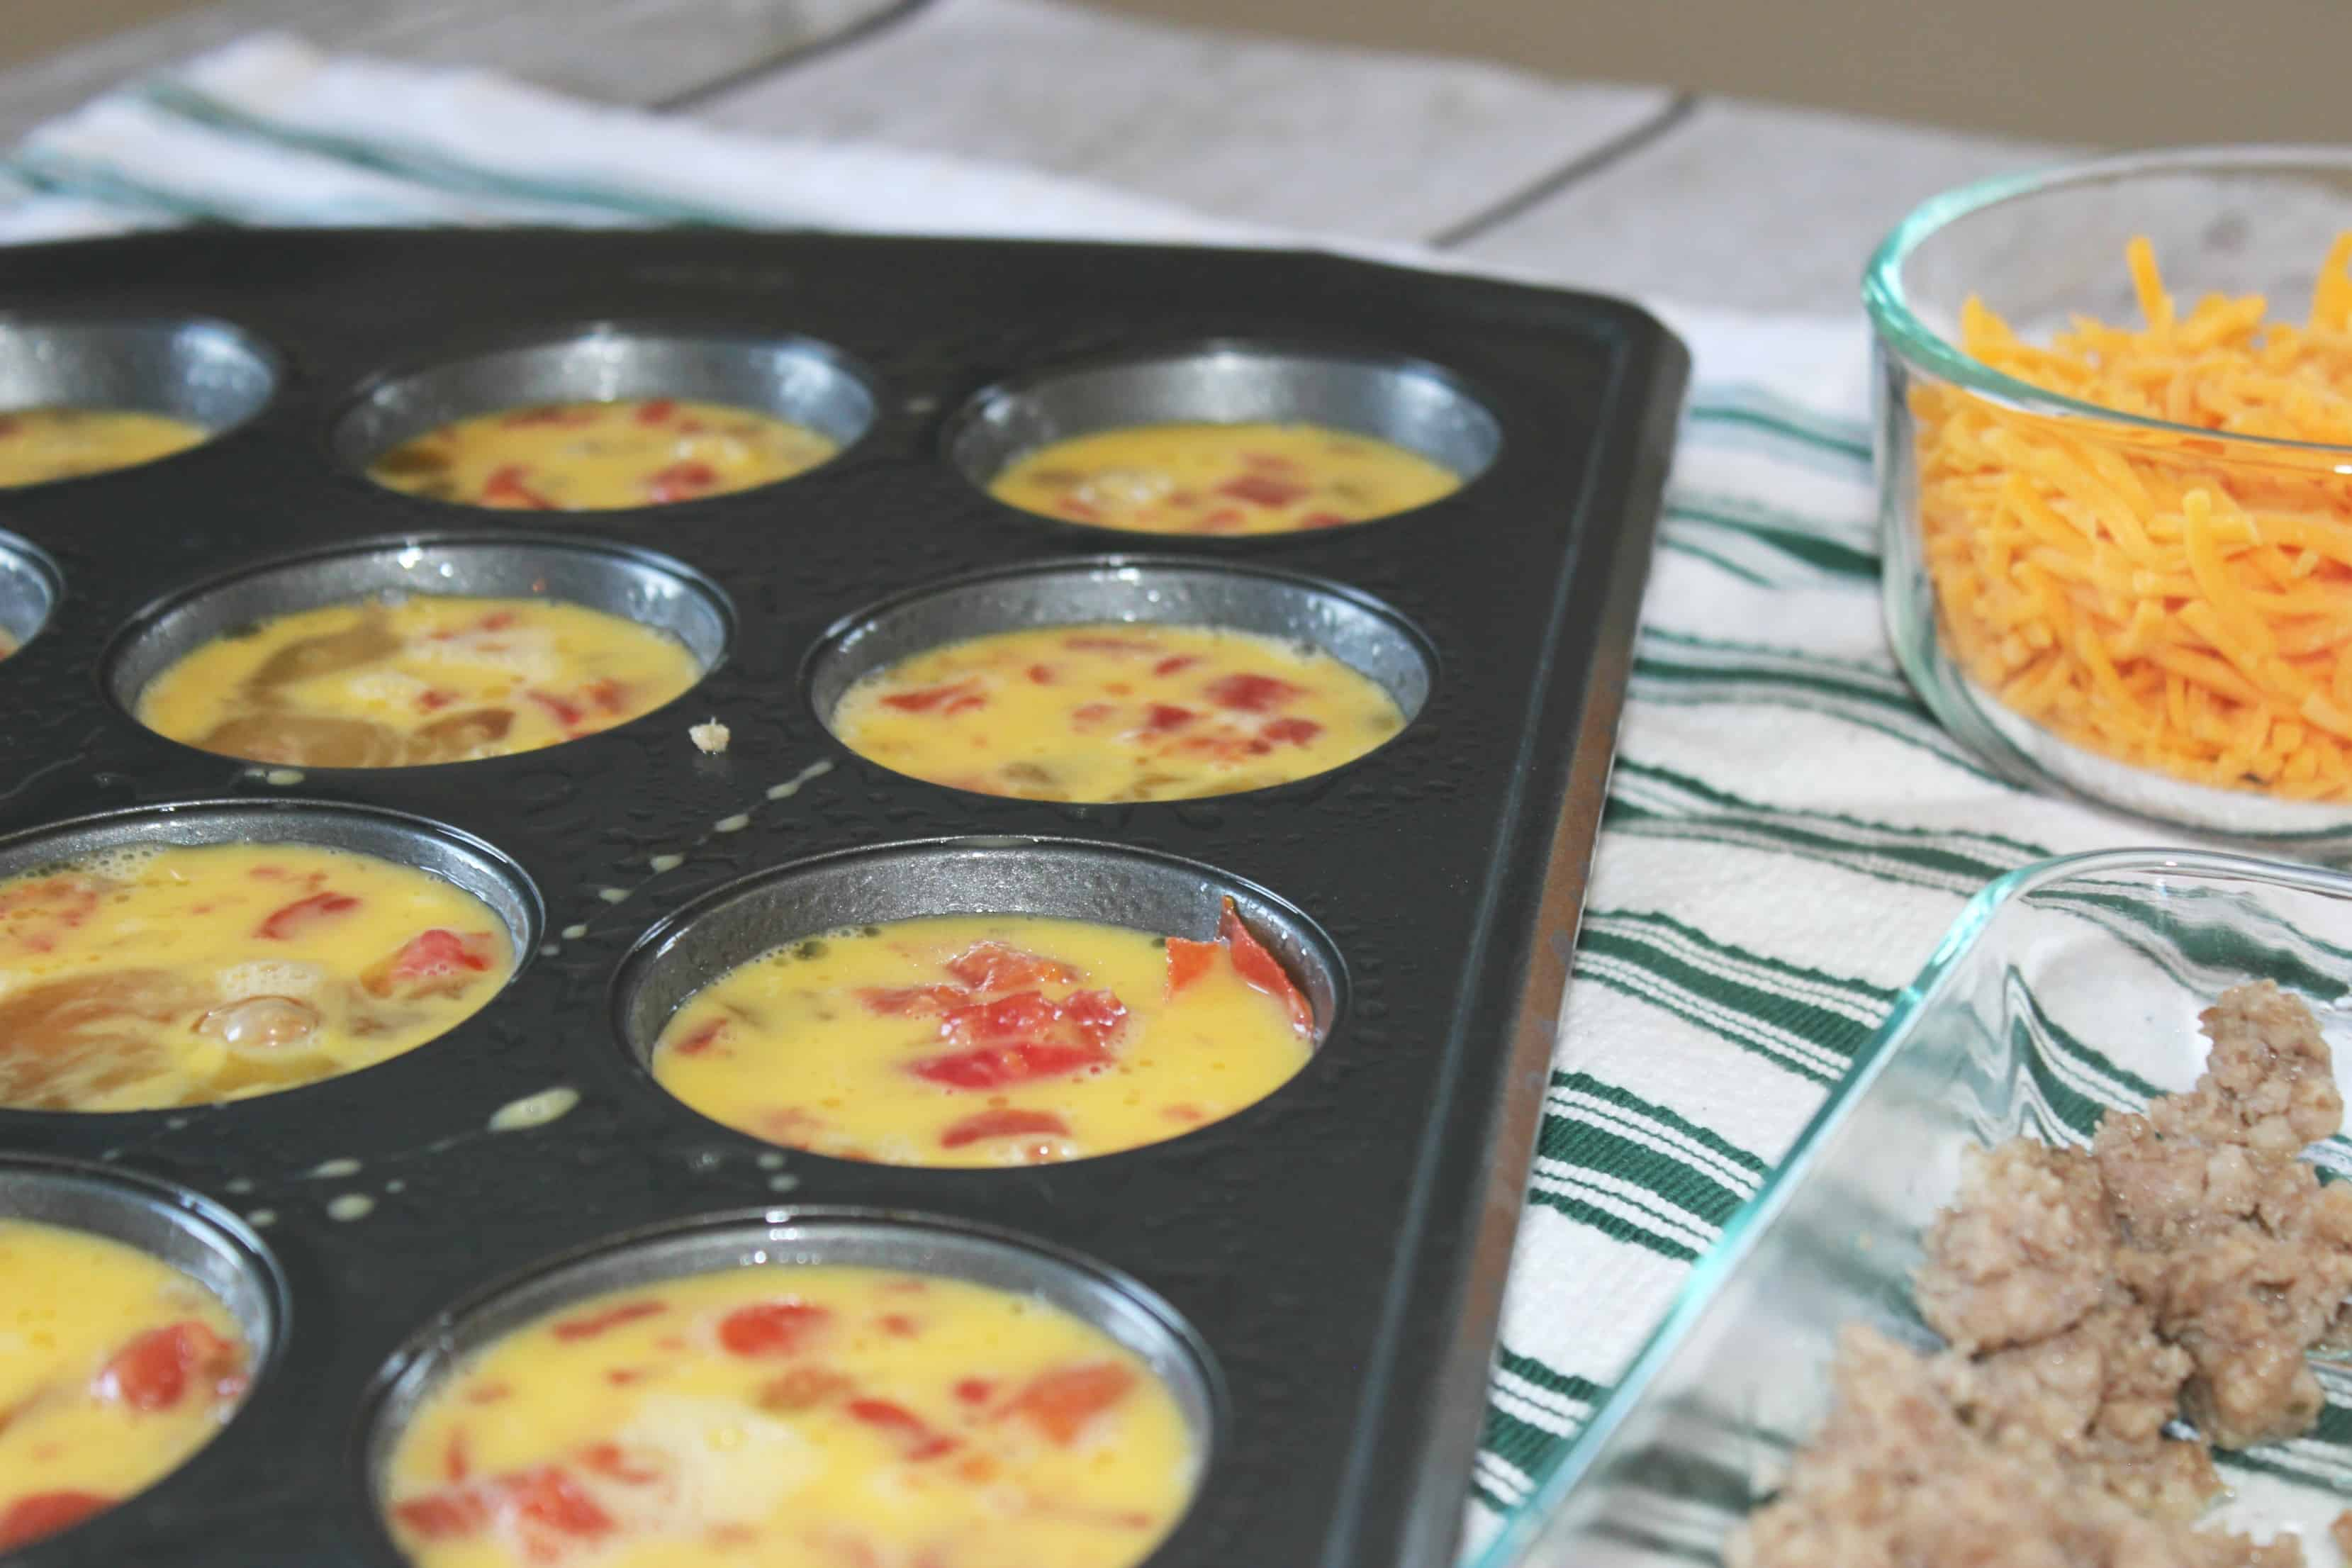 Sausage Egg Omelets In Muffin Tin Recipe To Kick Start Your Morning - Perfect to Re-Heat for a Quick Morning Breakfast on the Go!